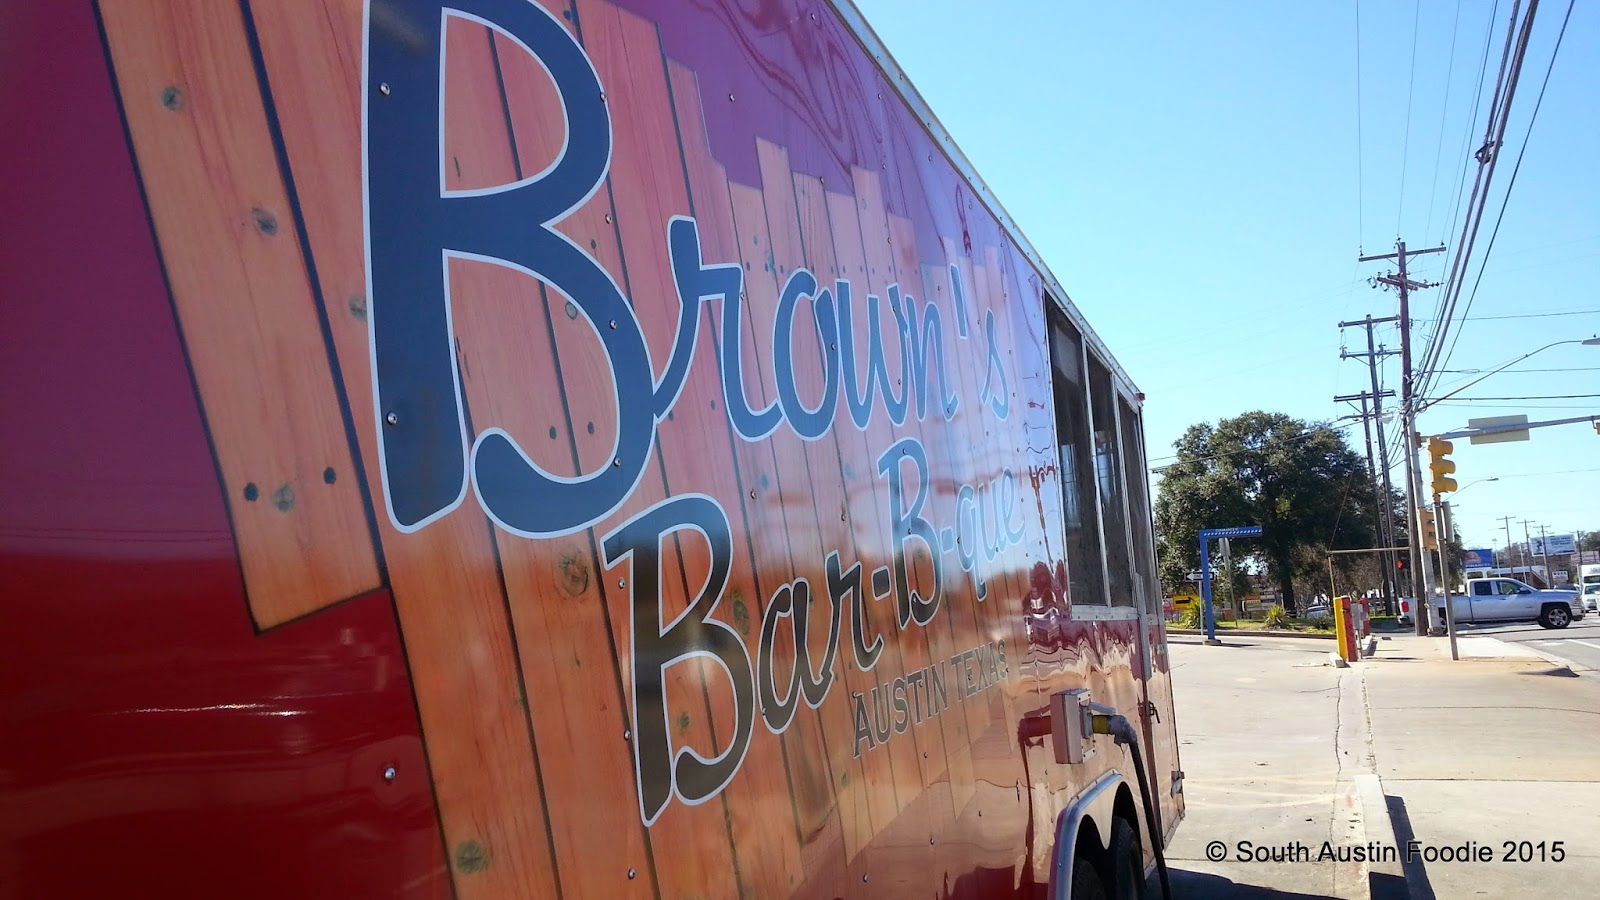 Brown's Bar-B-Que trailer